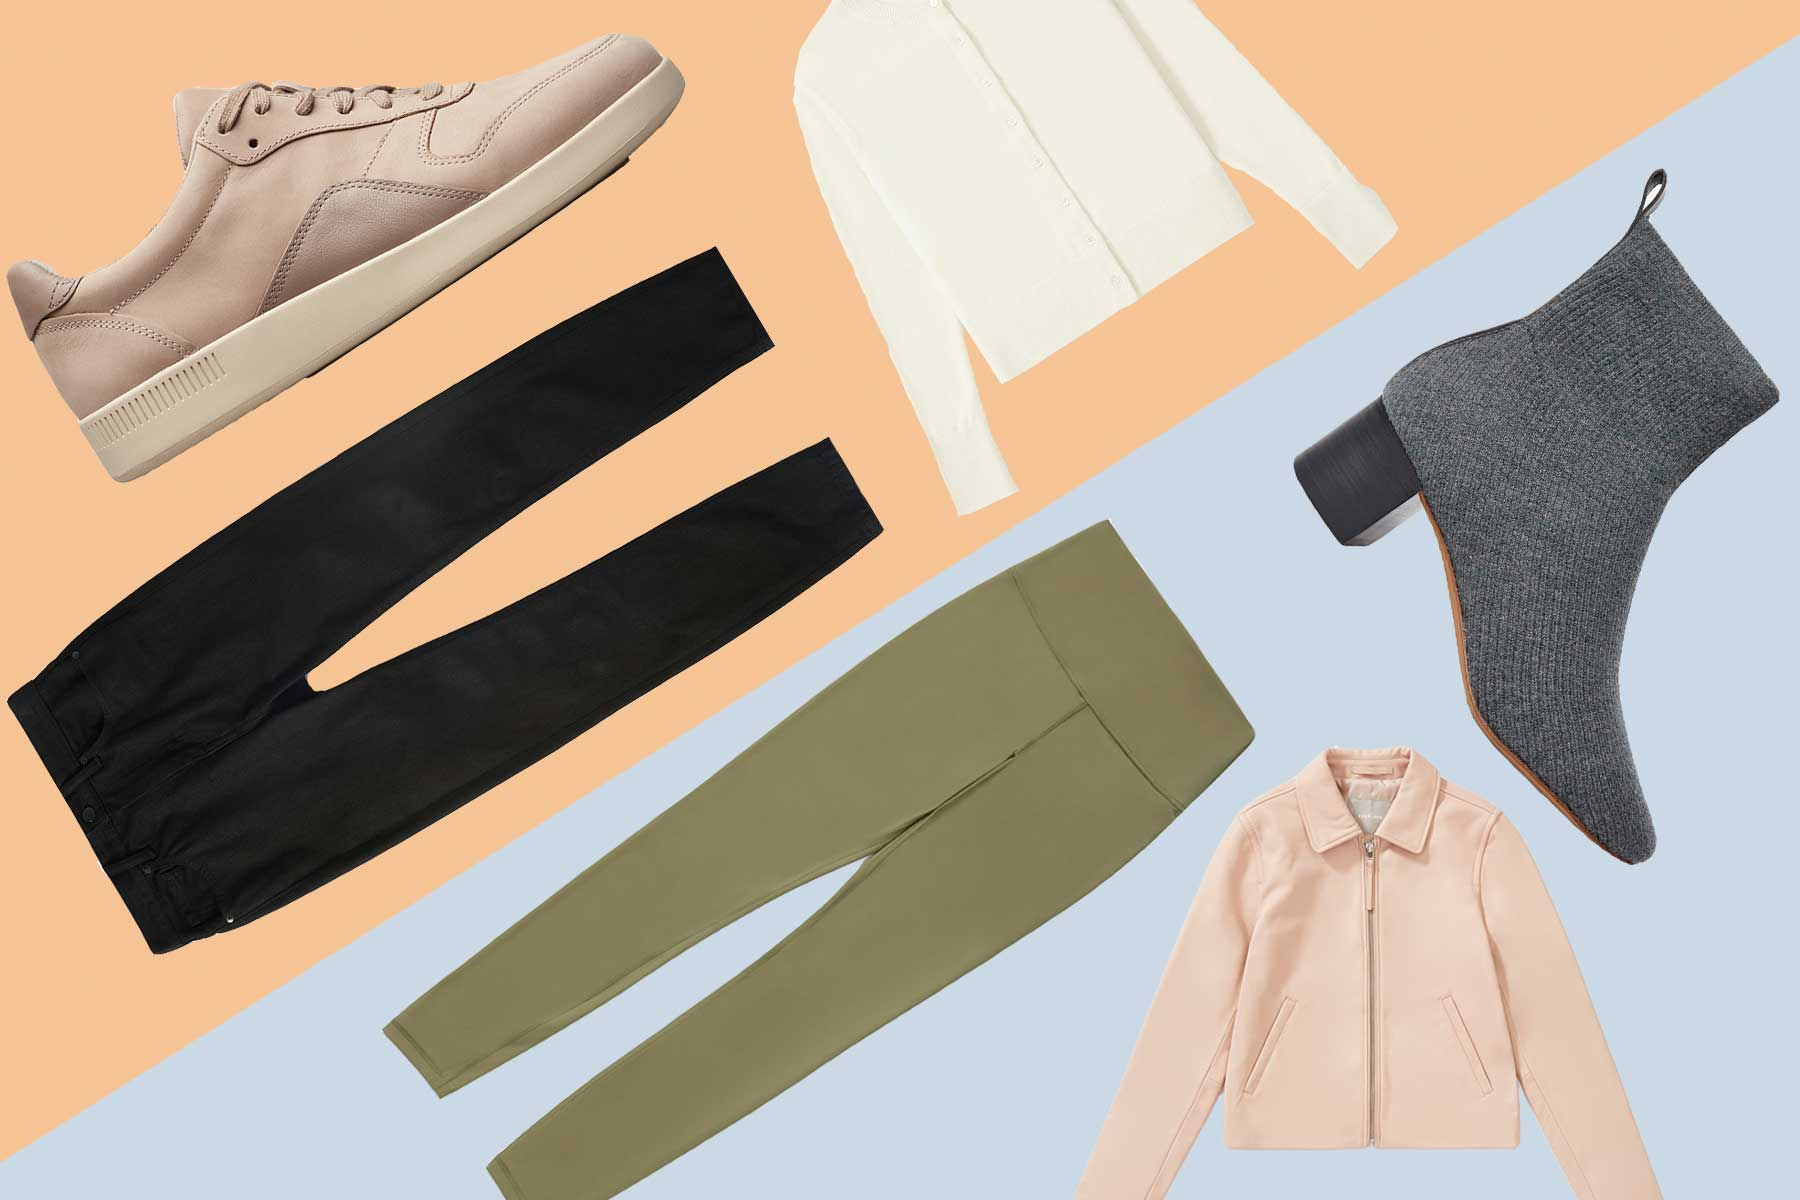 Everlane Goodbye 2020 Event sale items